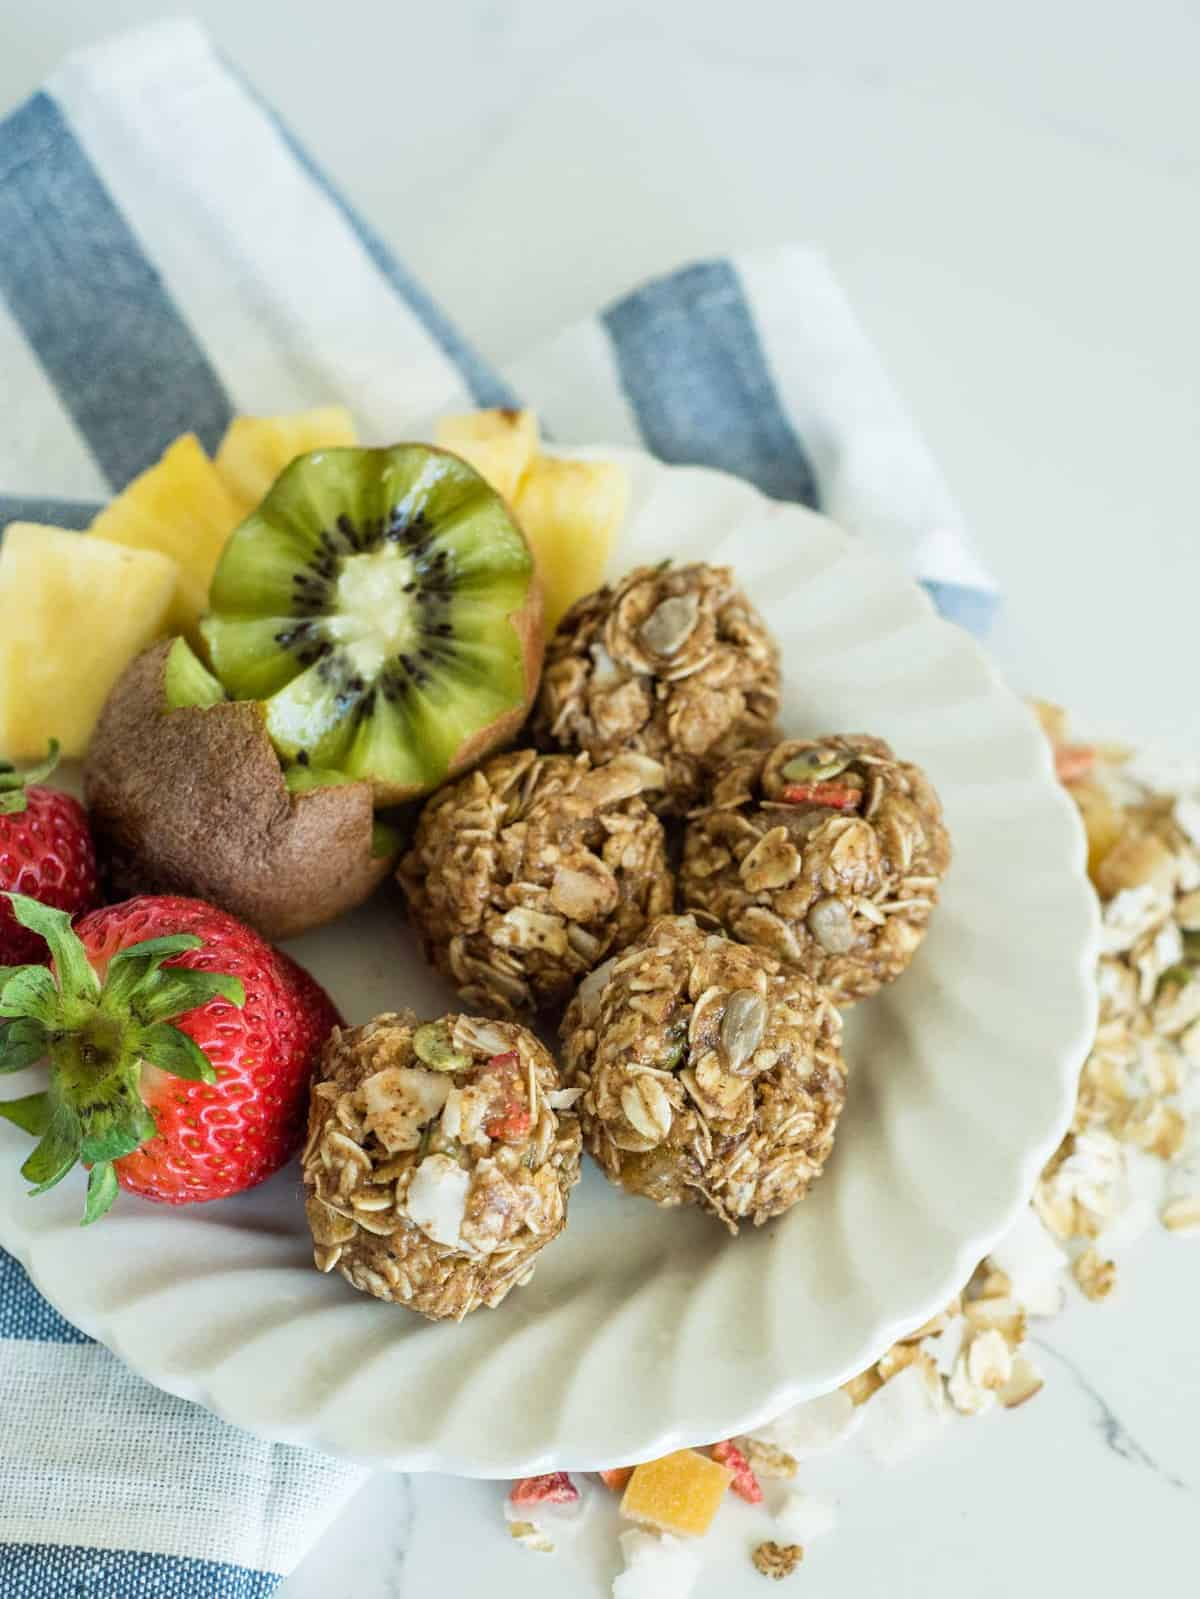 Image of No Bake Muesli Bites on a Breakfast Plate